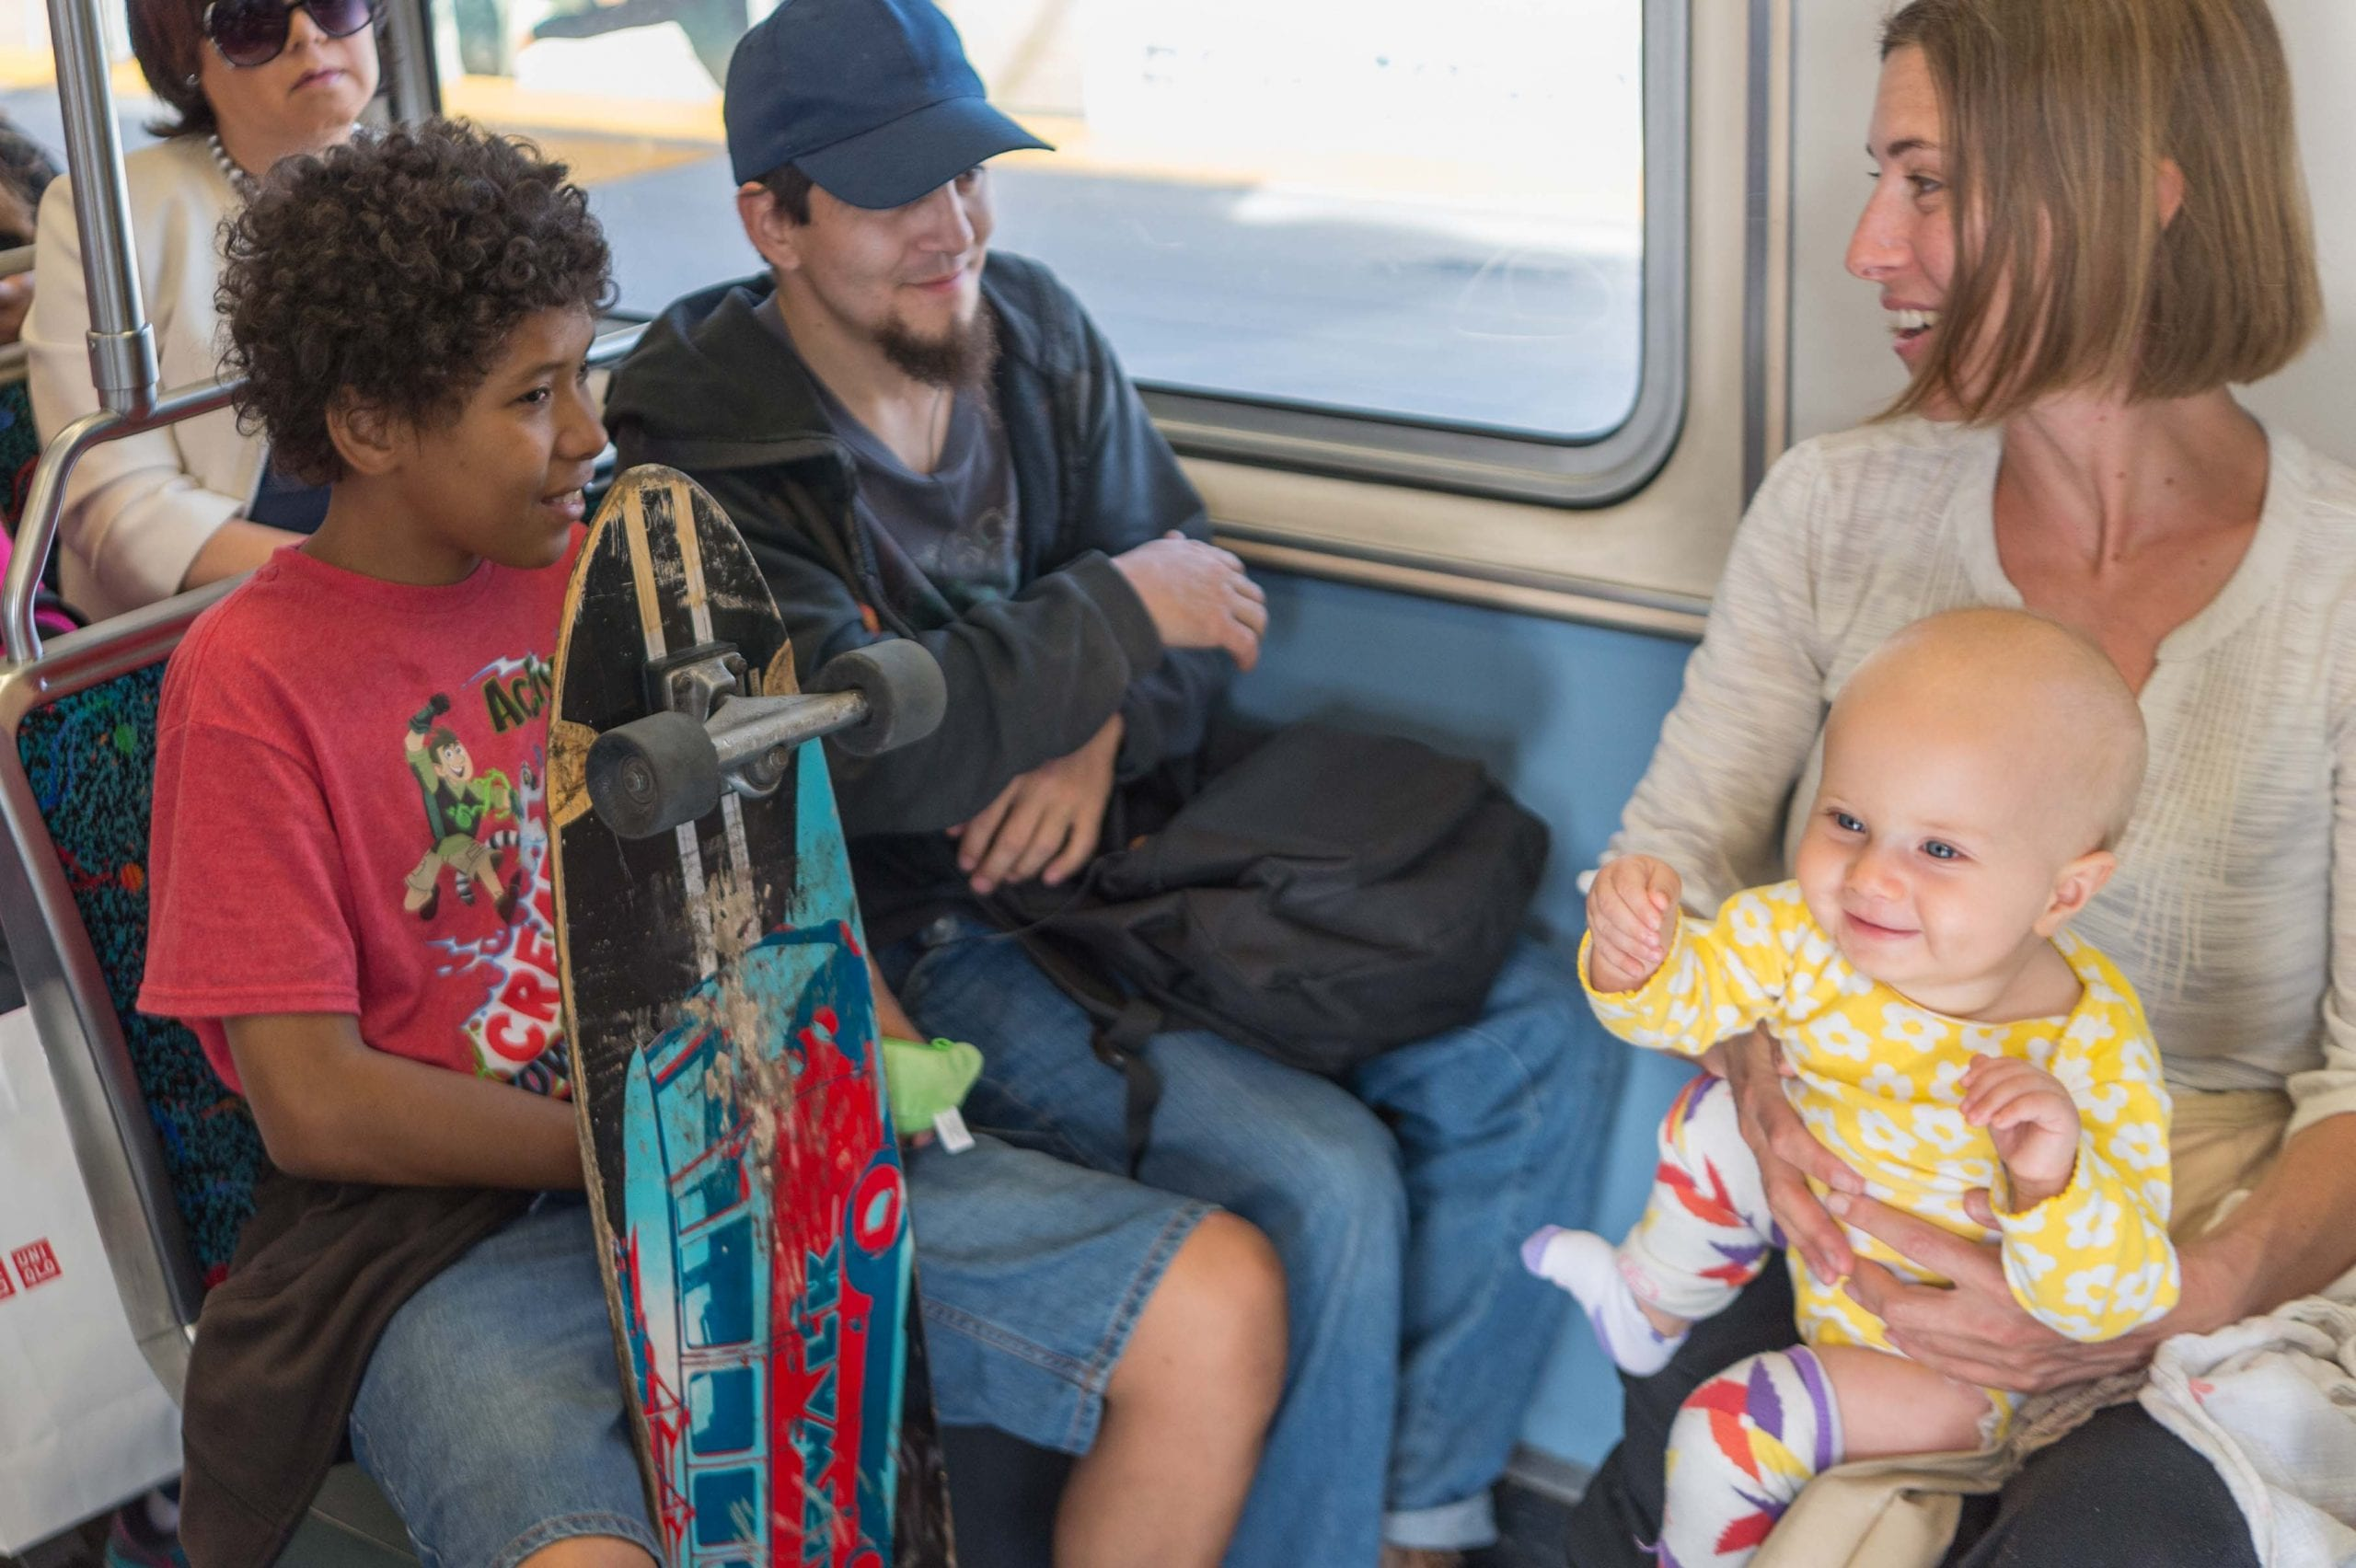 Babies + Transit on the Expo extension. Photo by Steve Hymon/Metro.